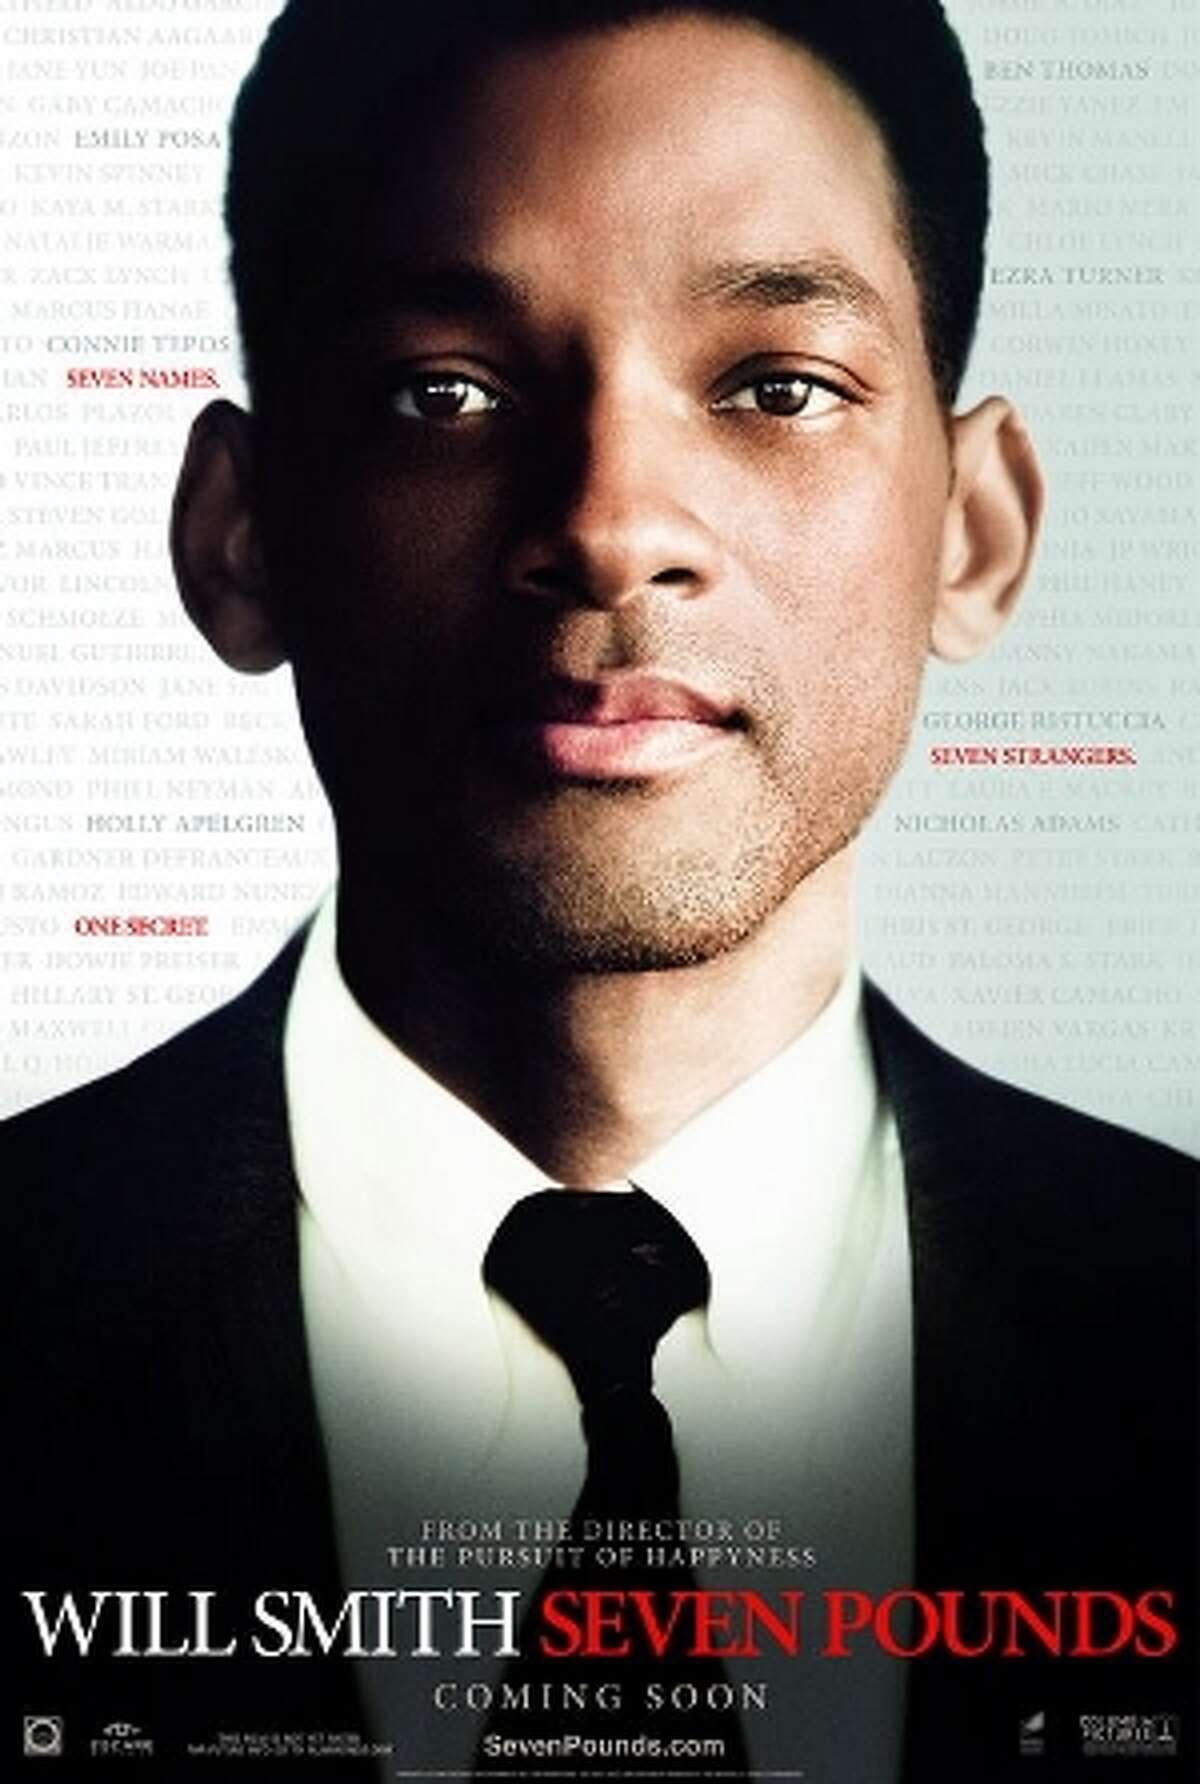 Seven Pounds (2008) Starring: Will Smith, Rosario Dawson, Woody Harrelson Audience Score: 75 Tomatometer: 27 Source: Rotten Tomatoes